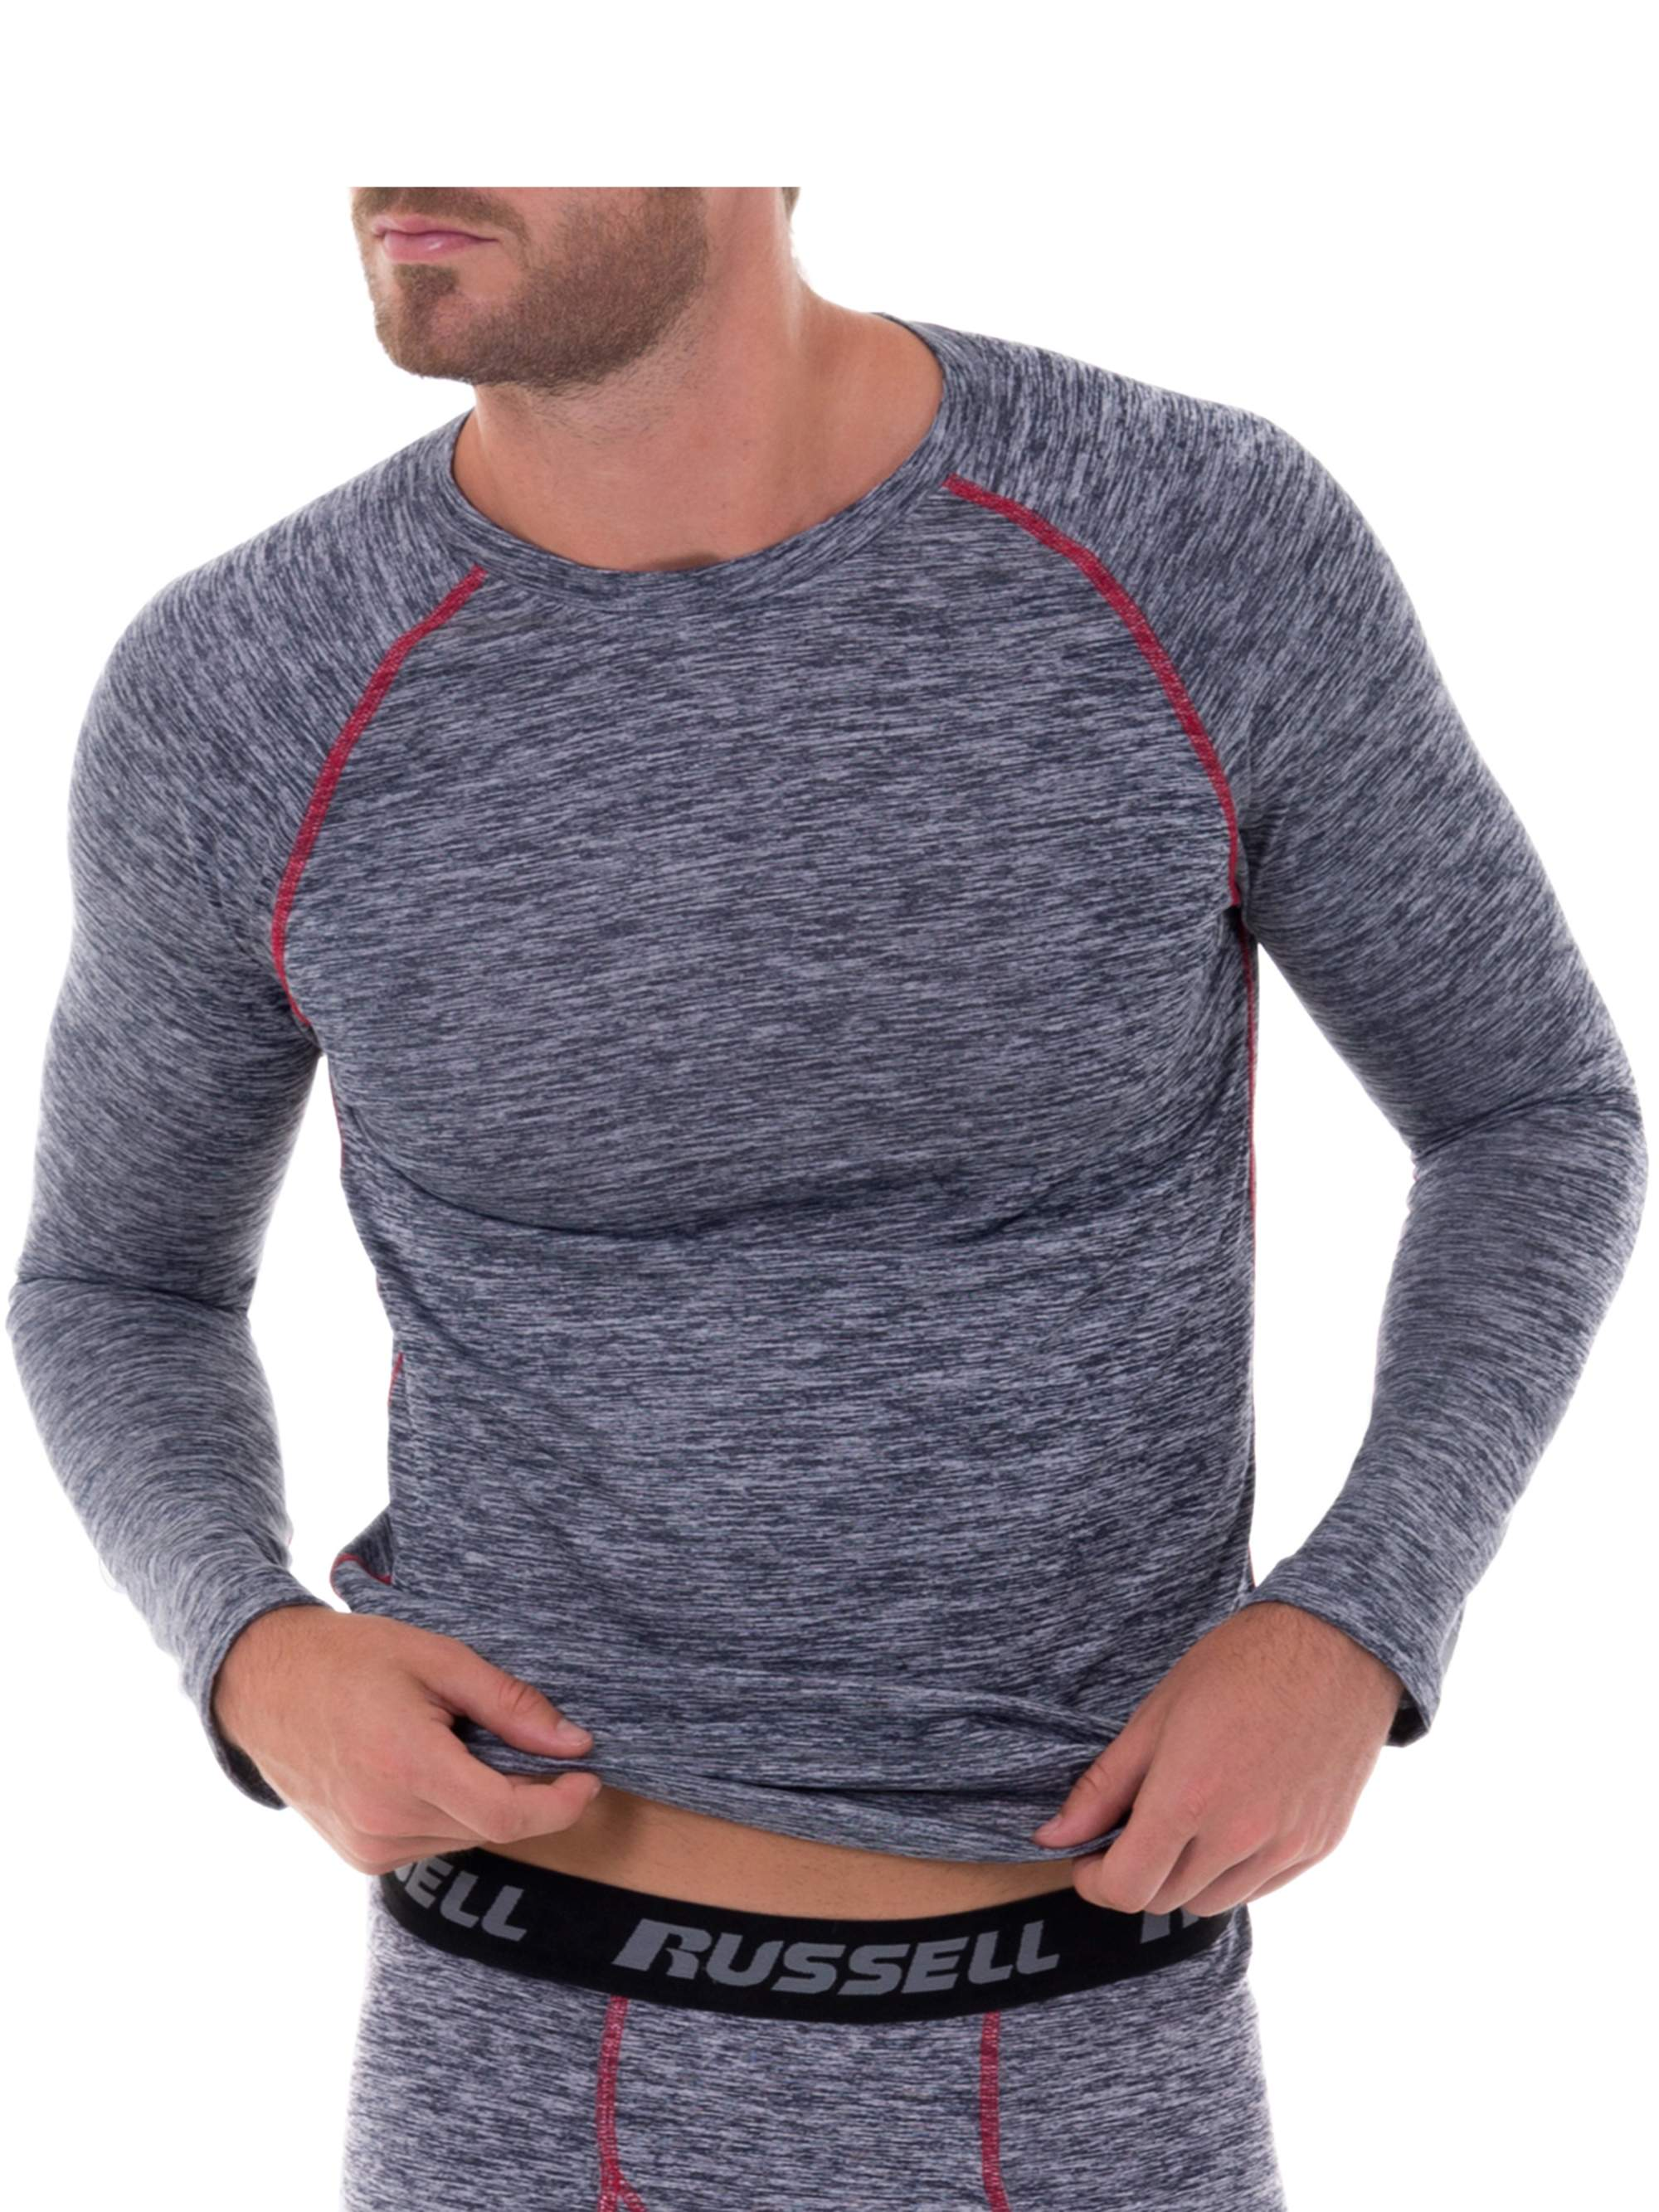 Save A Horse Ride Me Mens Gym Fitness Jersey Tank Baselayer